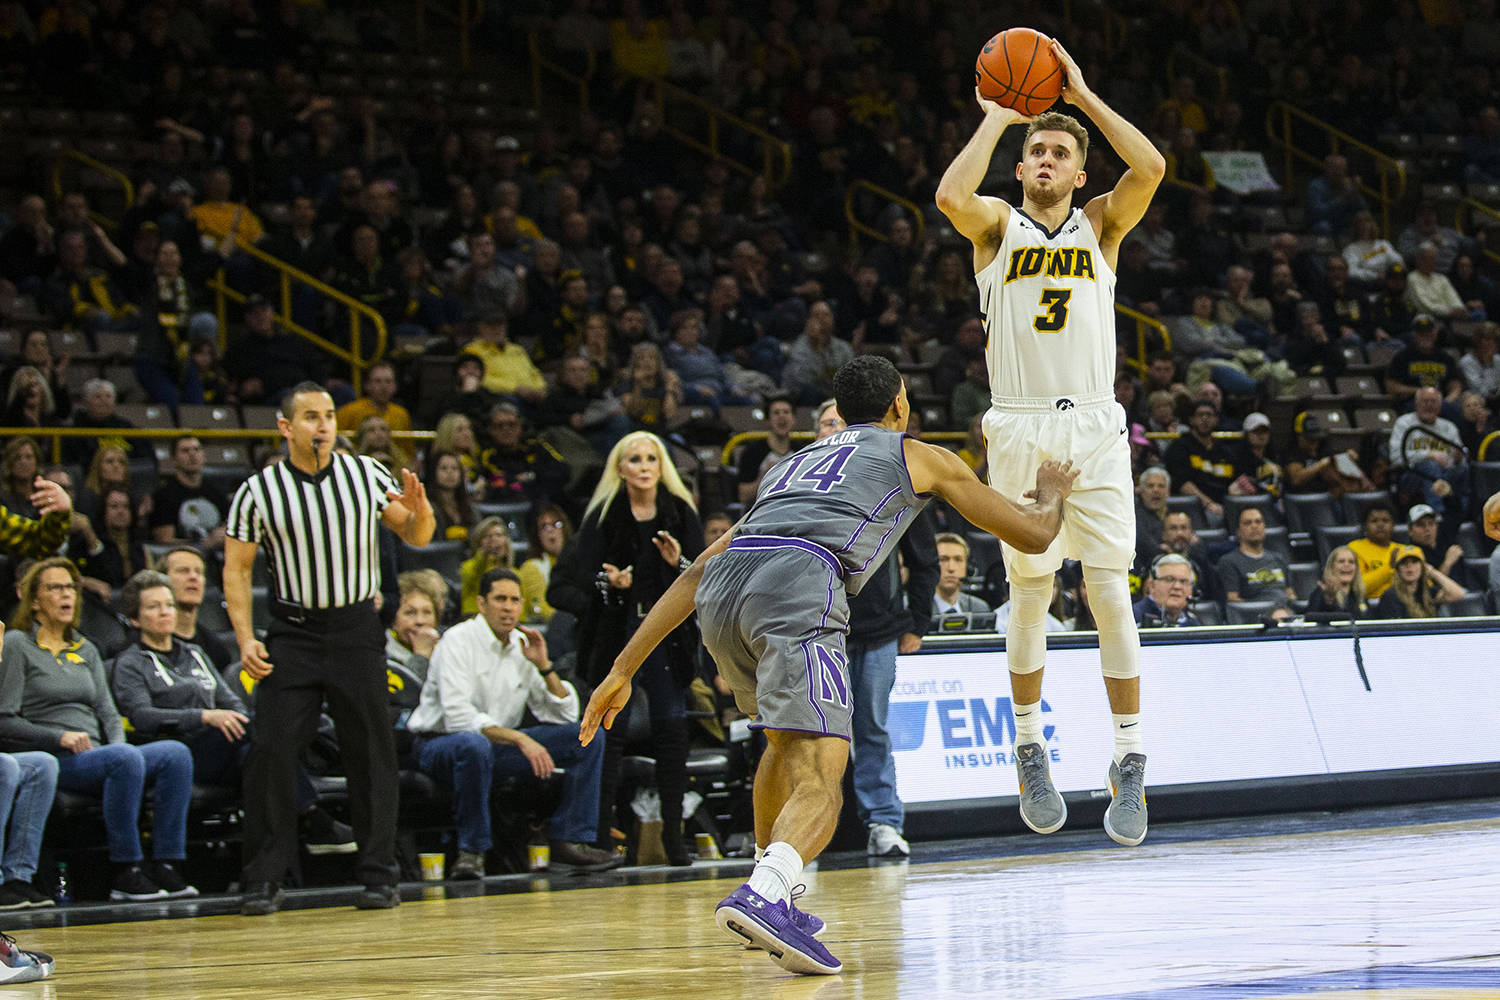 Iowa guard Jordan Bohannon attempts a 3-pointer during the Iowa/Northwestern men's basketball game at Carver-Hawkeye Arena on Sunday, February 10, 2019.